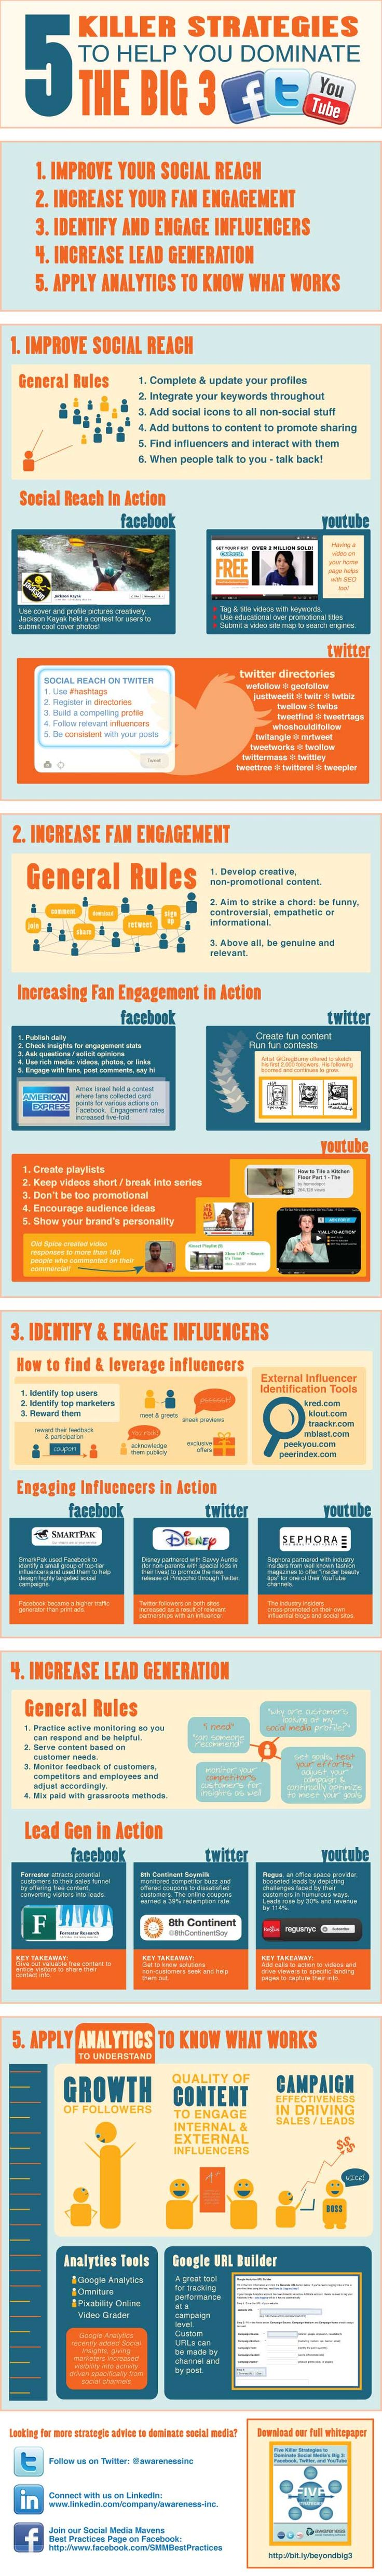 Infographic – 5 Killer Strategies to Dominate Social Media's Big 3: Facebook, Twitter and YouTube